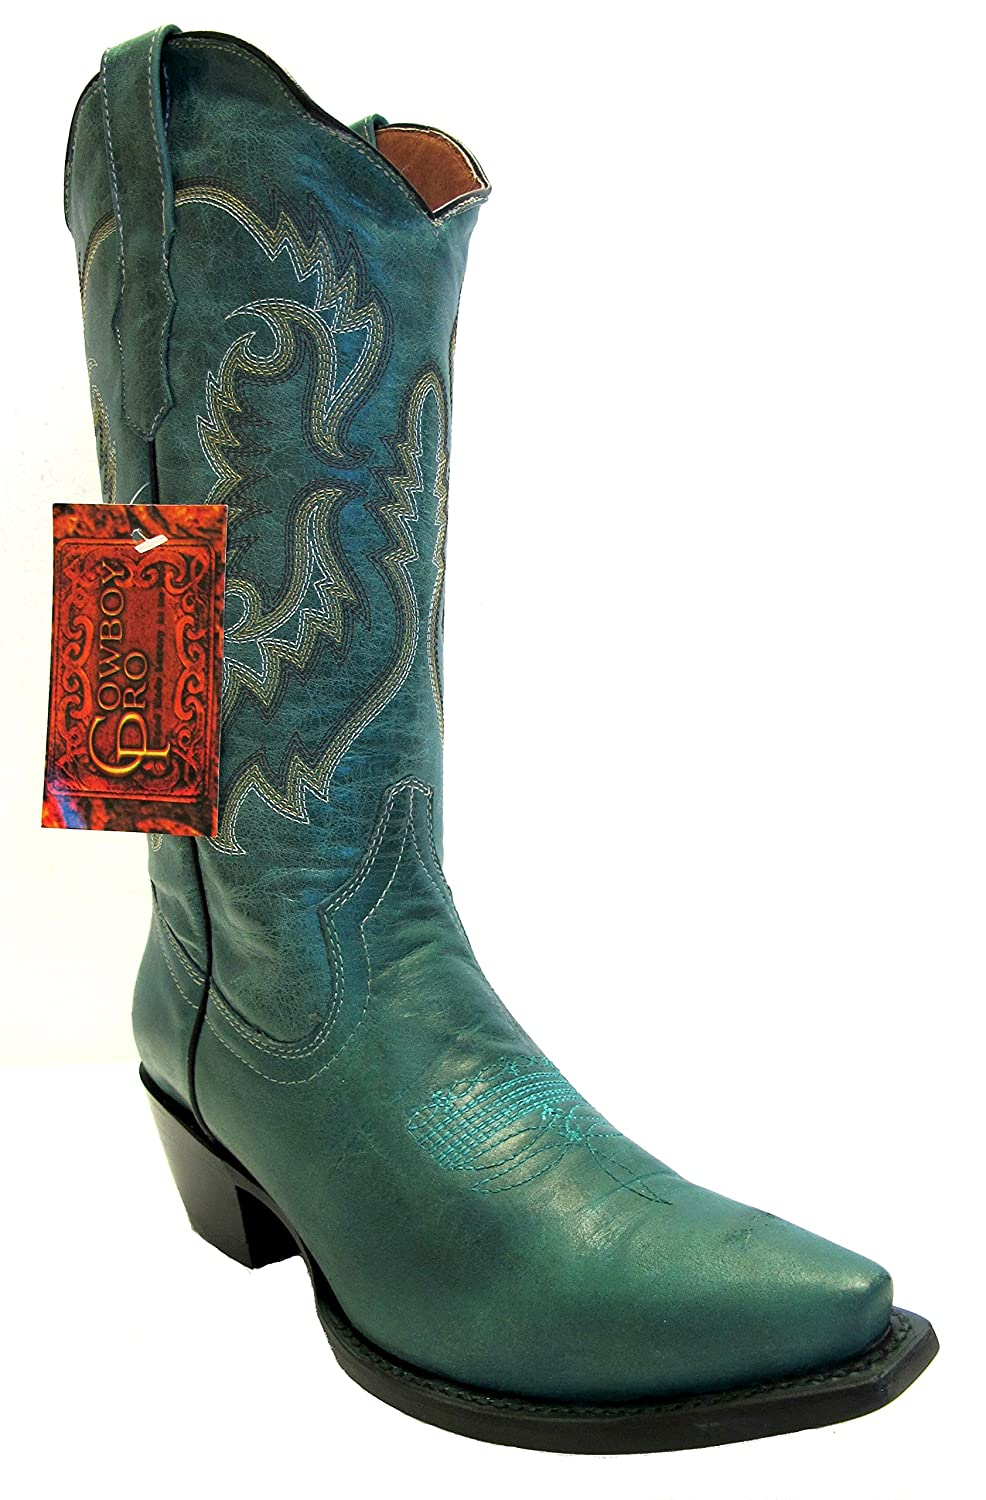 Women's New Leather Cowgirl Western Riding Boots Snip Toe Turquoise B01N05FQ8B 5 B(M) US